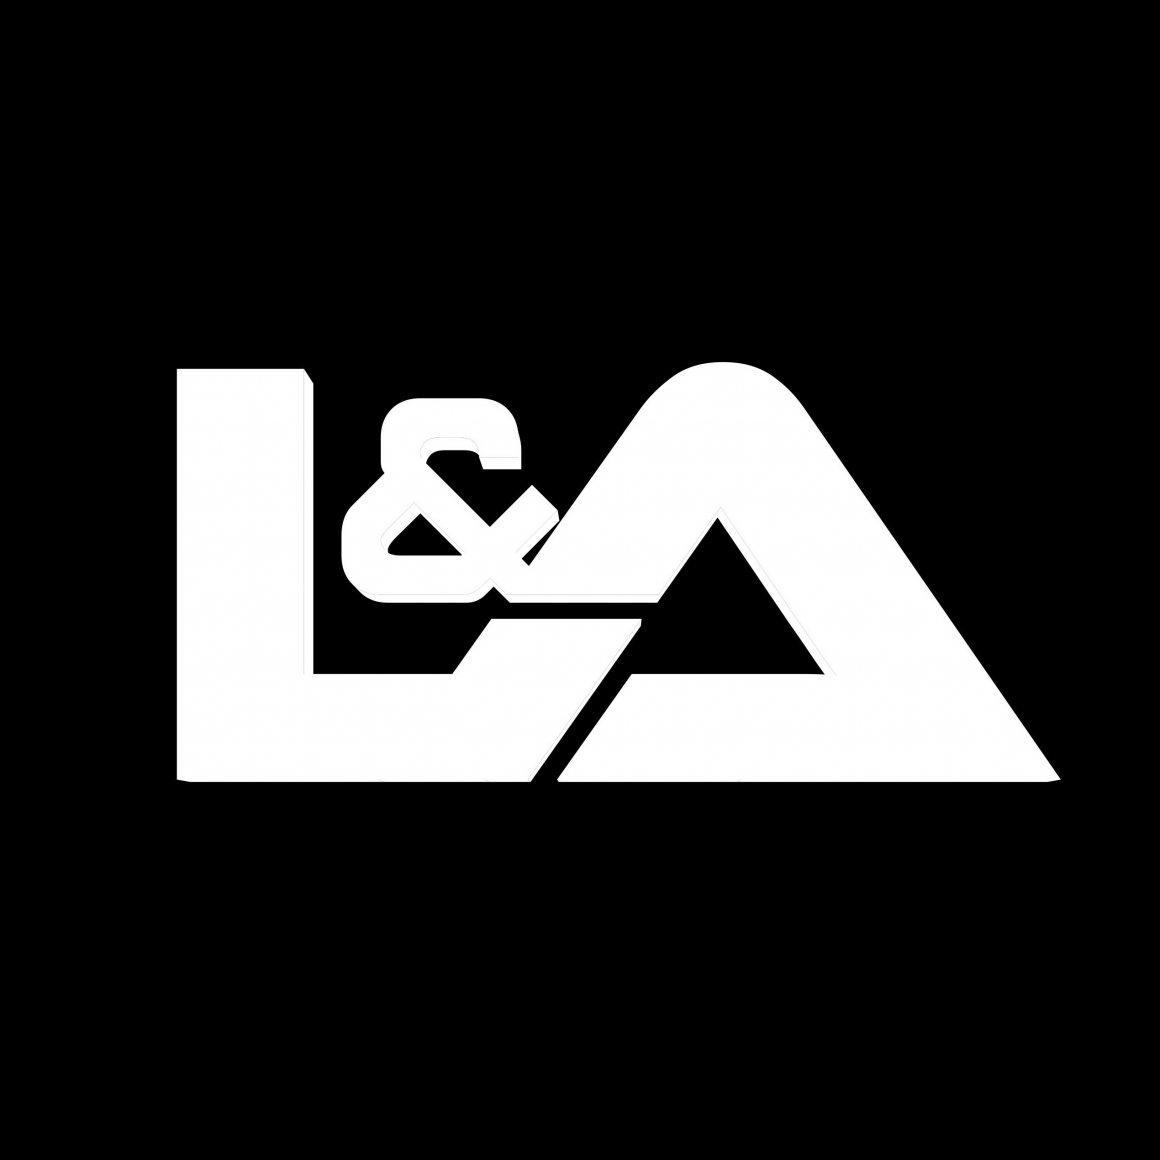 The First L&A Blog Post